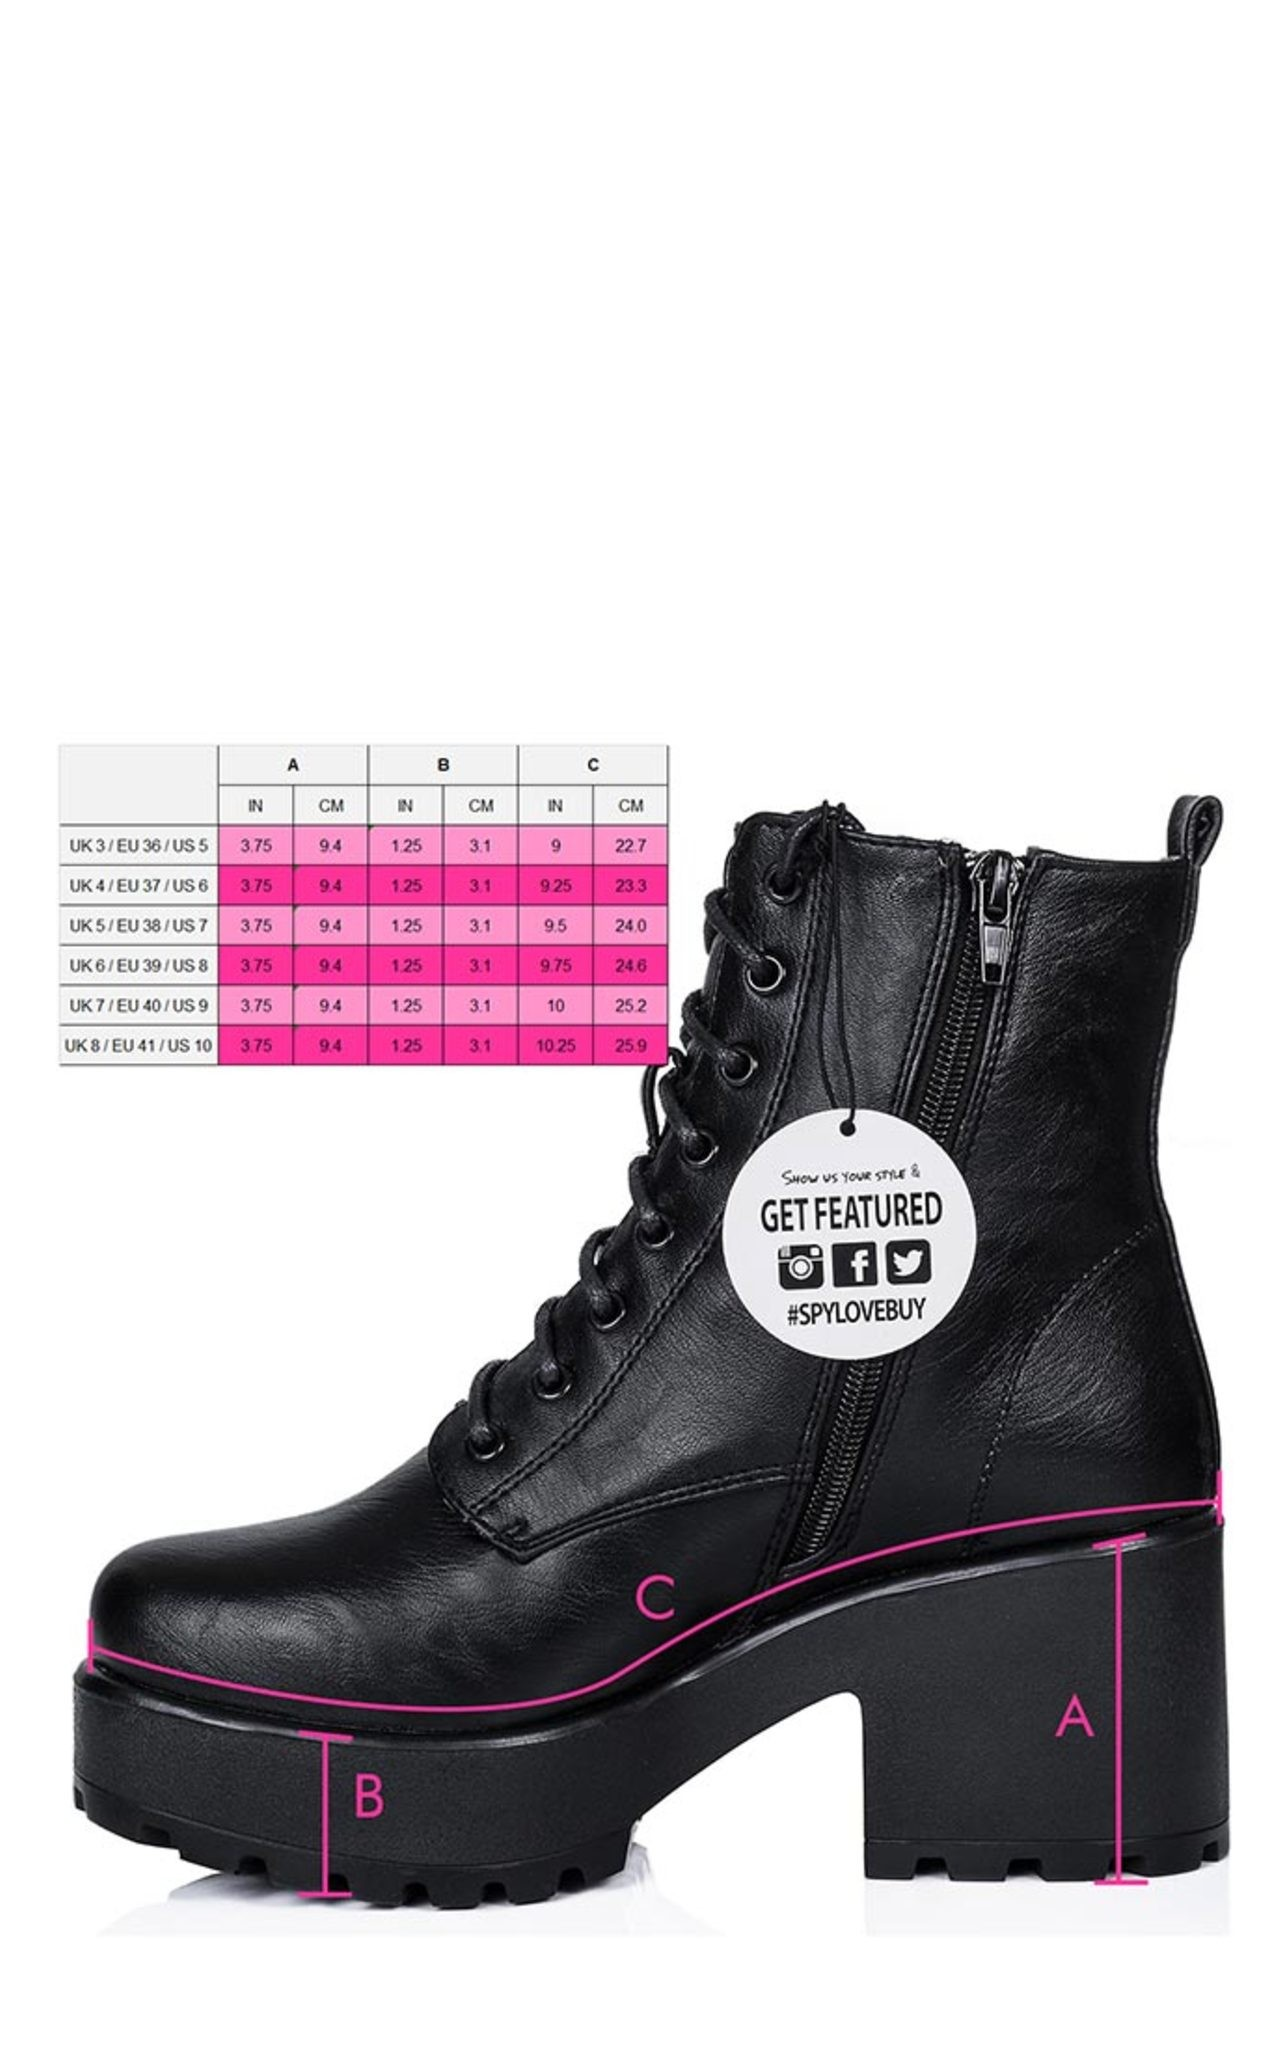 626f8ec2a20ca xlarge heeled-cleated-sole-lace-up-platform-ankle-boots-spylovebuy-nd26- black-leather-meas.jpg